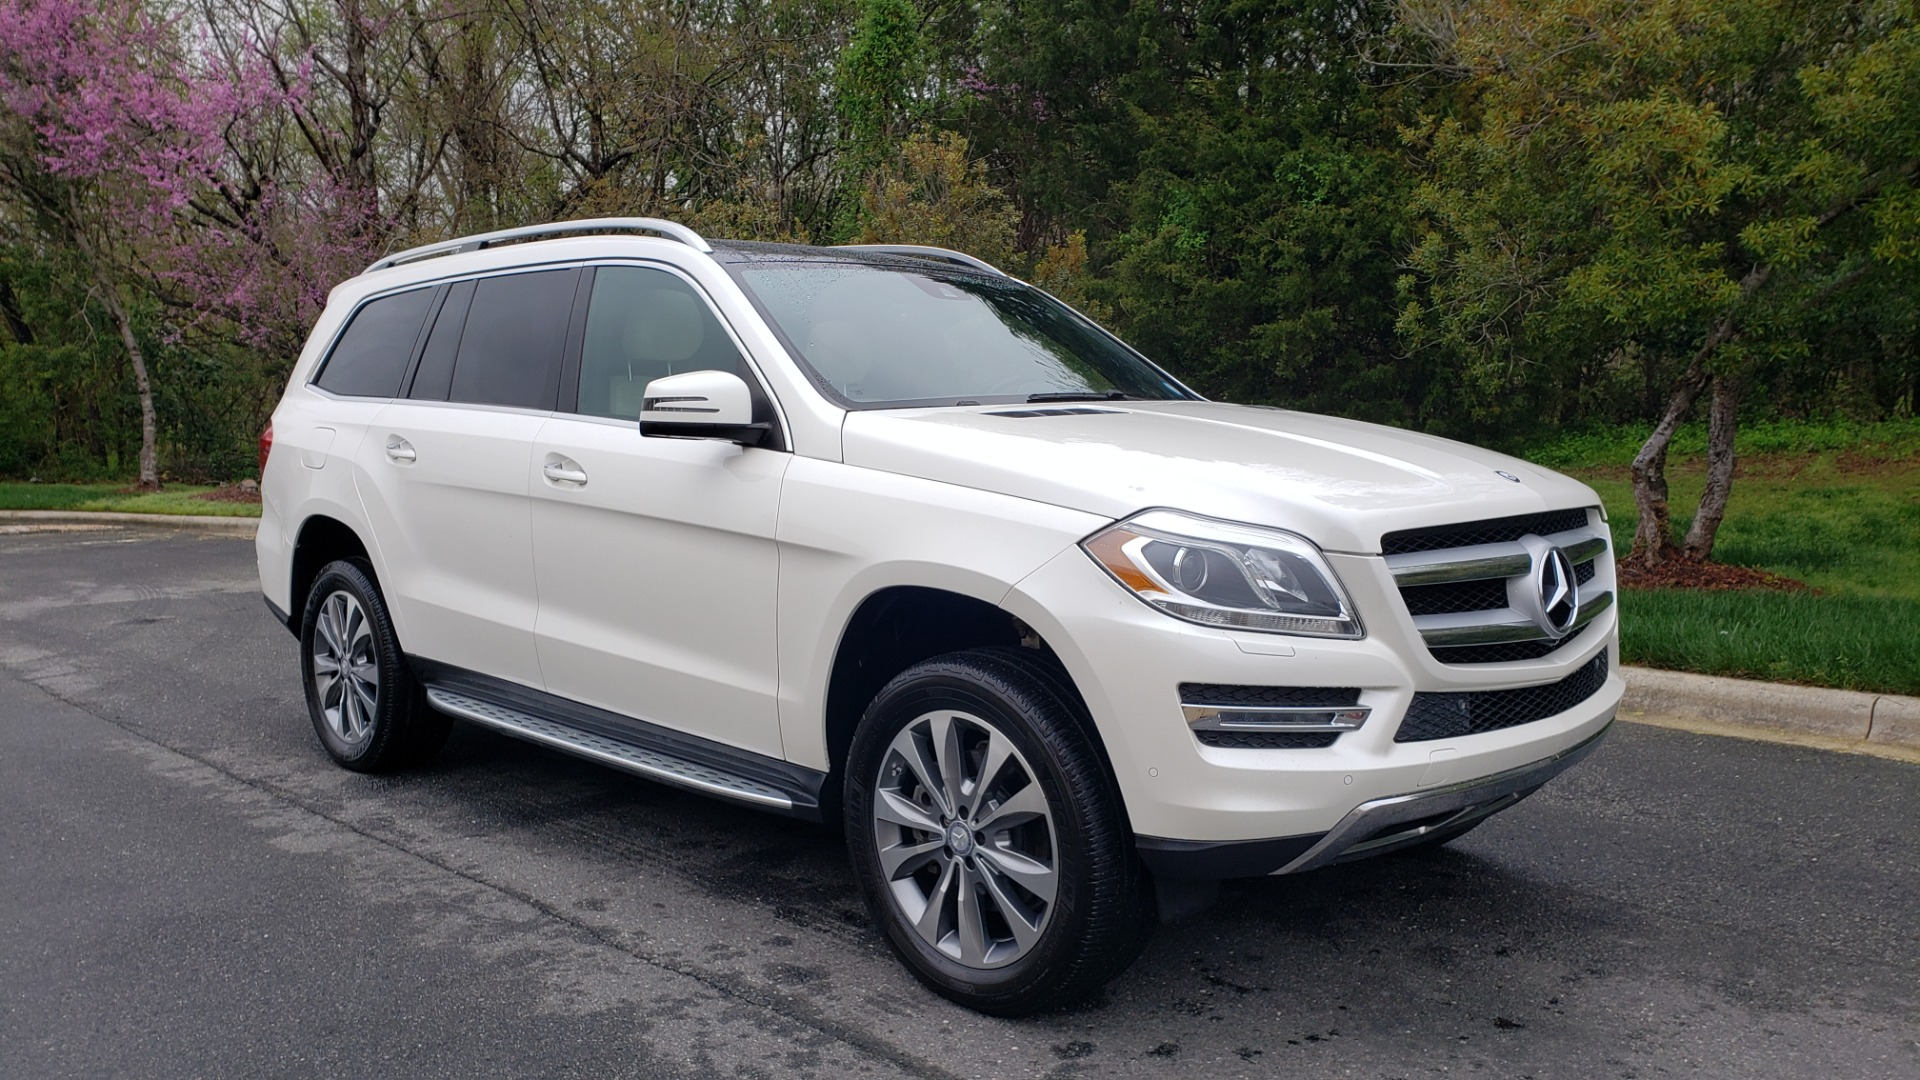 Used 2015 Mercedes-Benz GL-Class GL 450 4MATIC PREMIUM / NAV / PANO-ROOF / LANE TRACK / PARK ASST for sale Sold at Formula Imports in Charlotte NC 28227 4